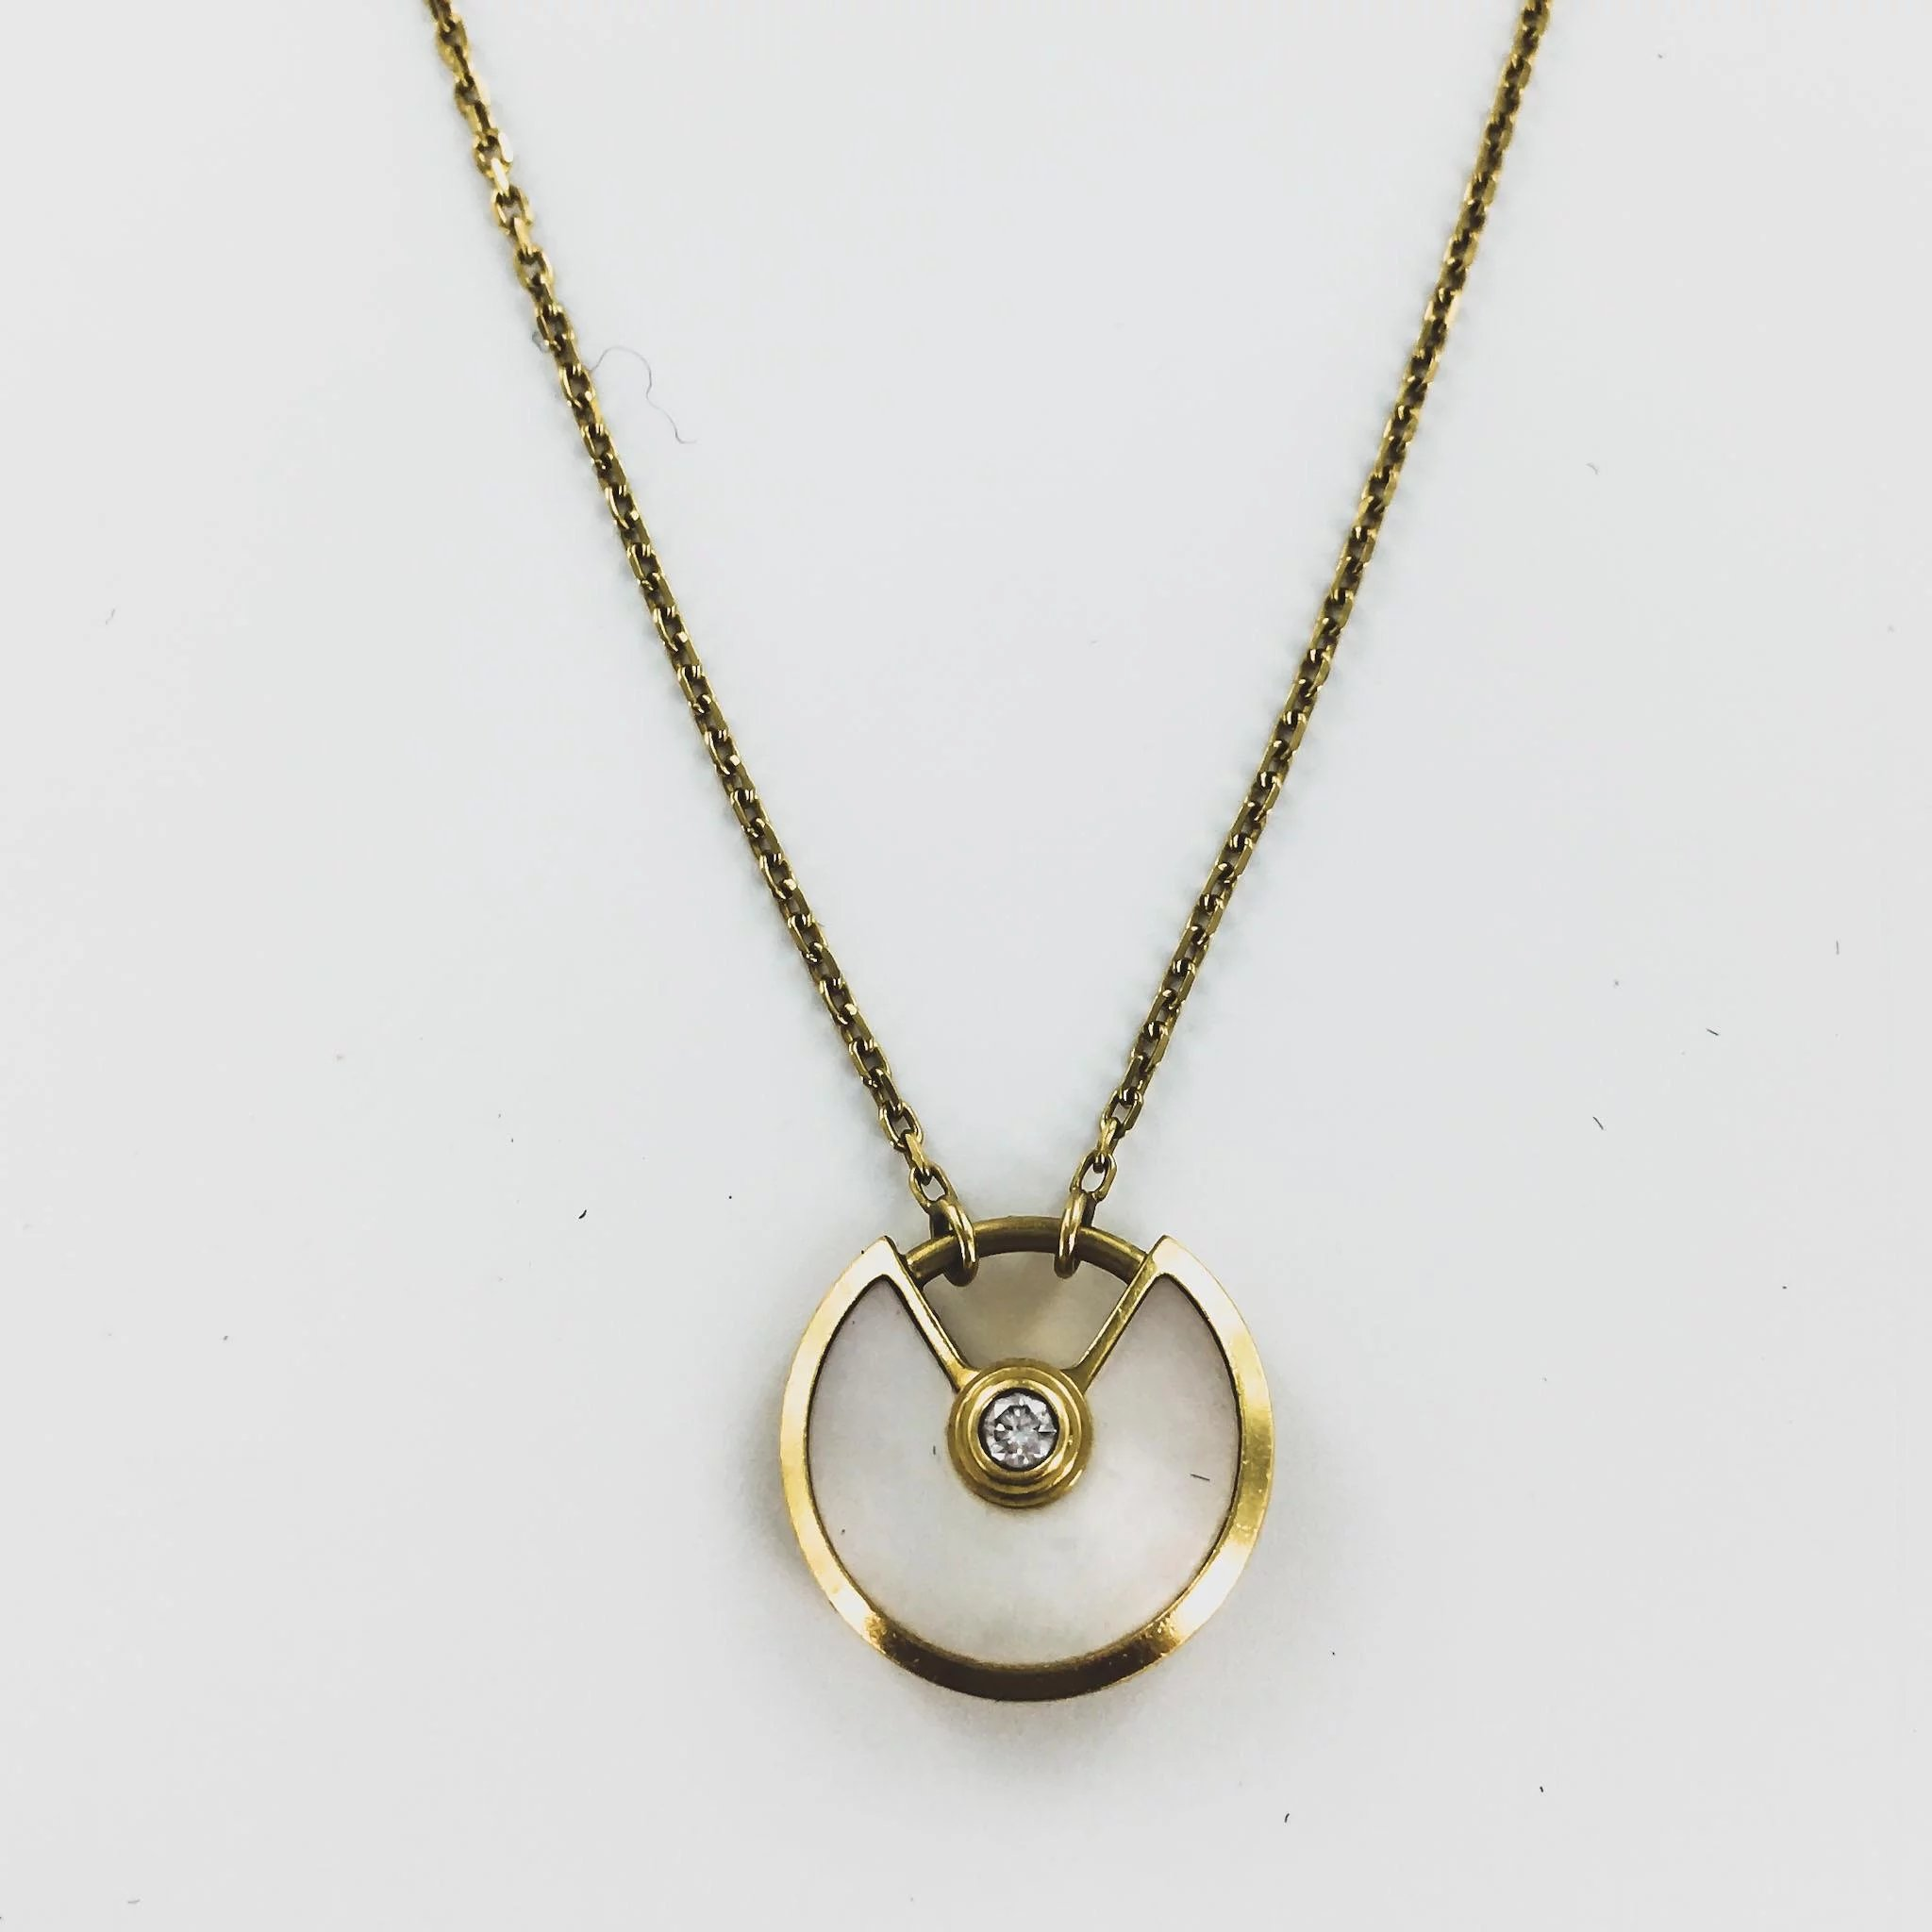 pendants product gold s harari von round lace pendant necklaces bargen diamond yossi large necklace